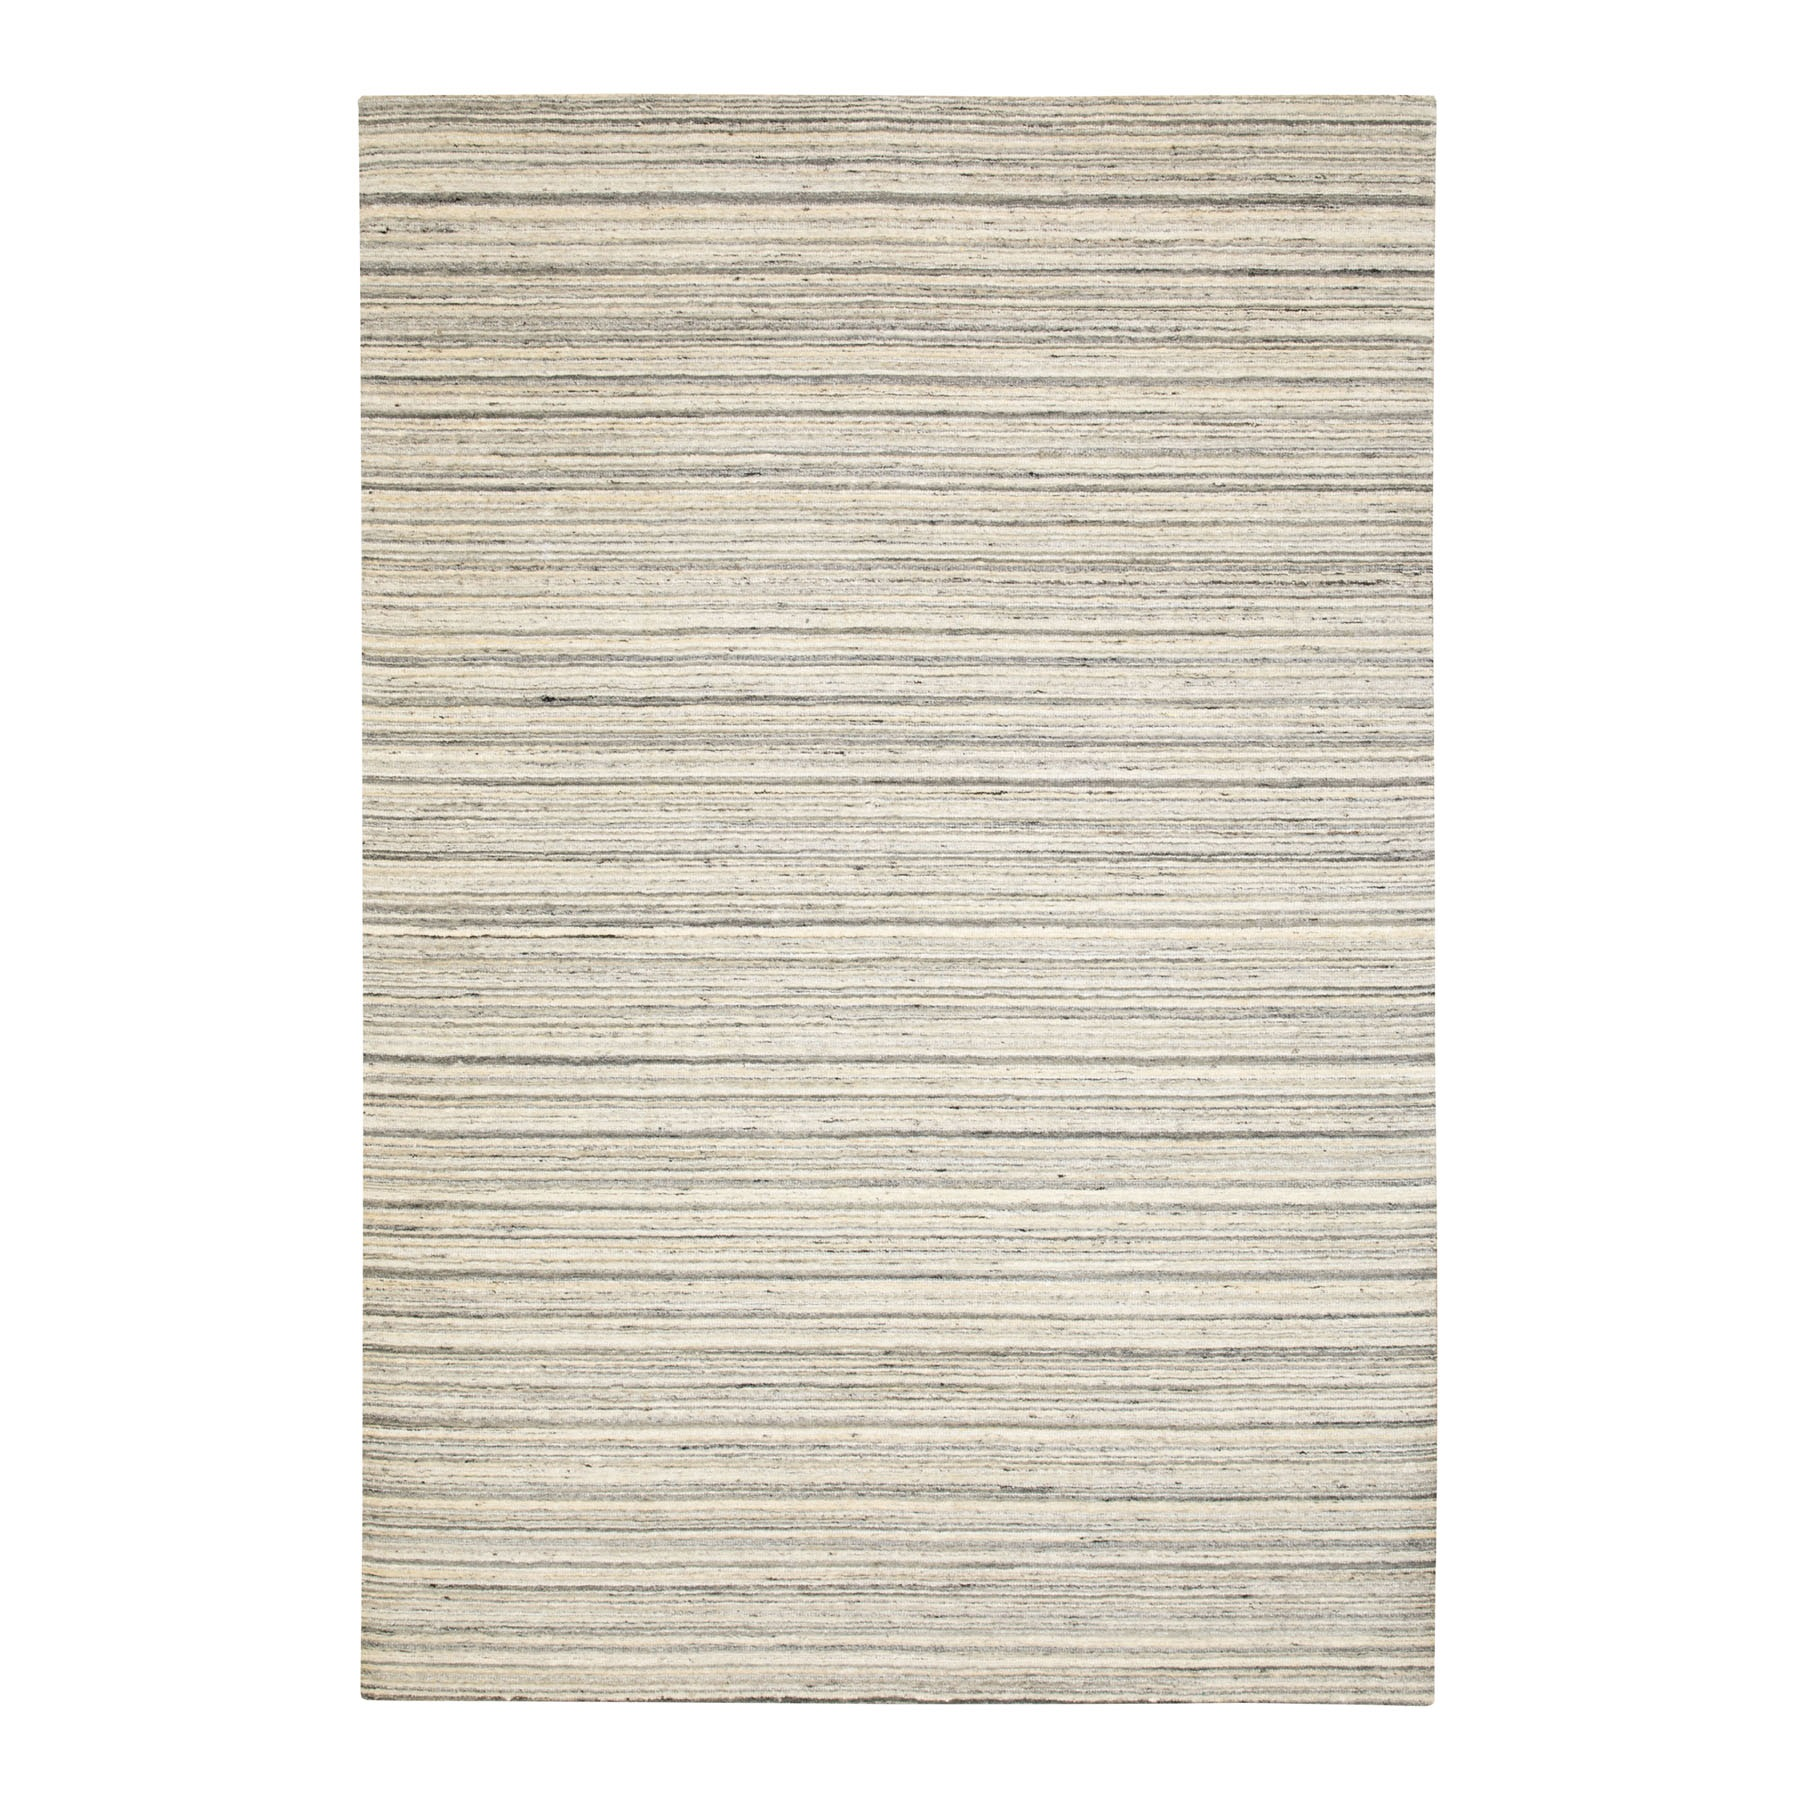 Mid Century Modern Collection Hand Loomed Beige Rug No: 1116740